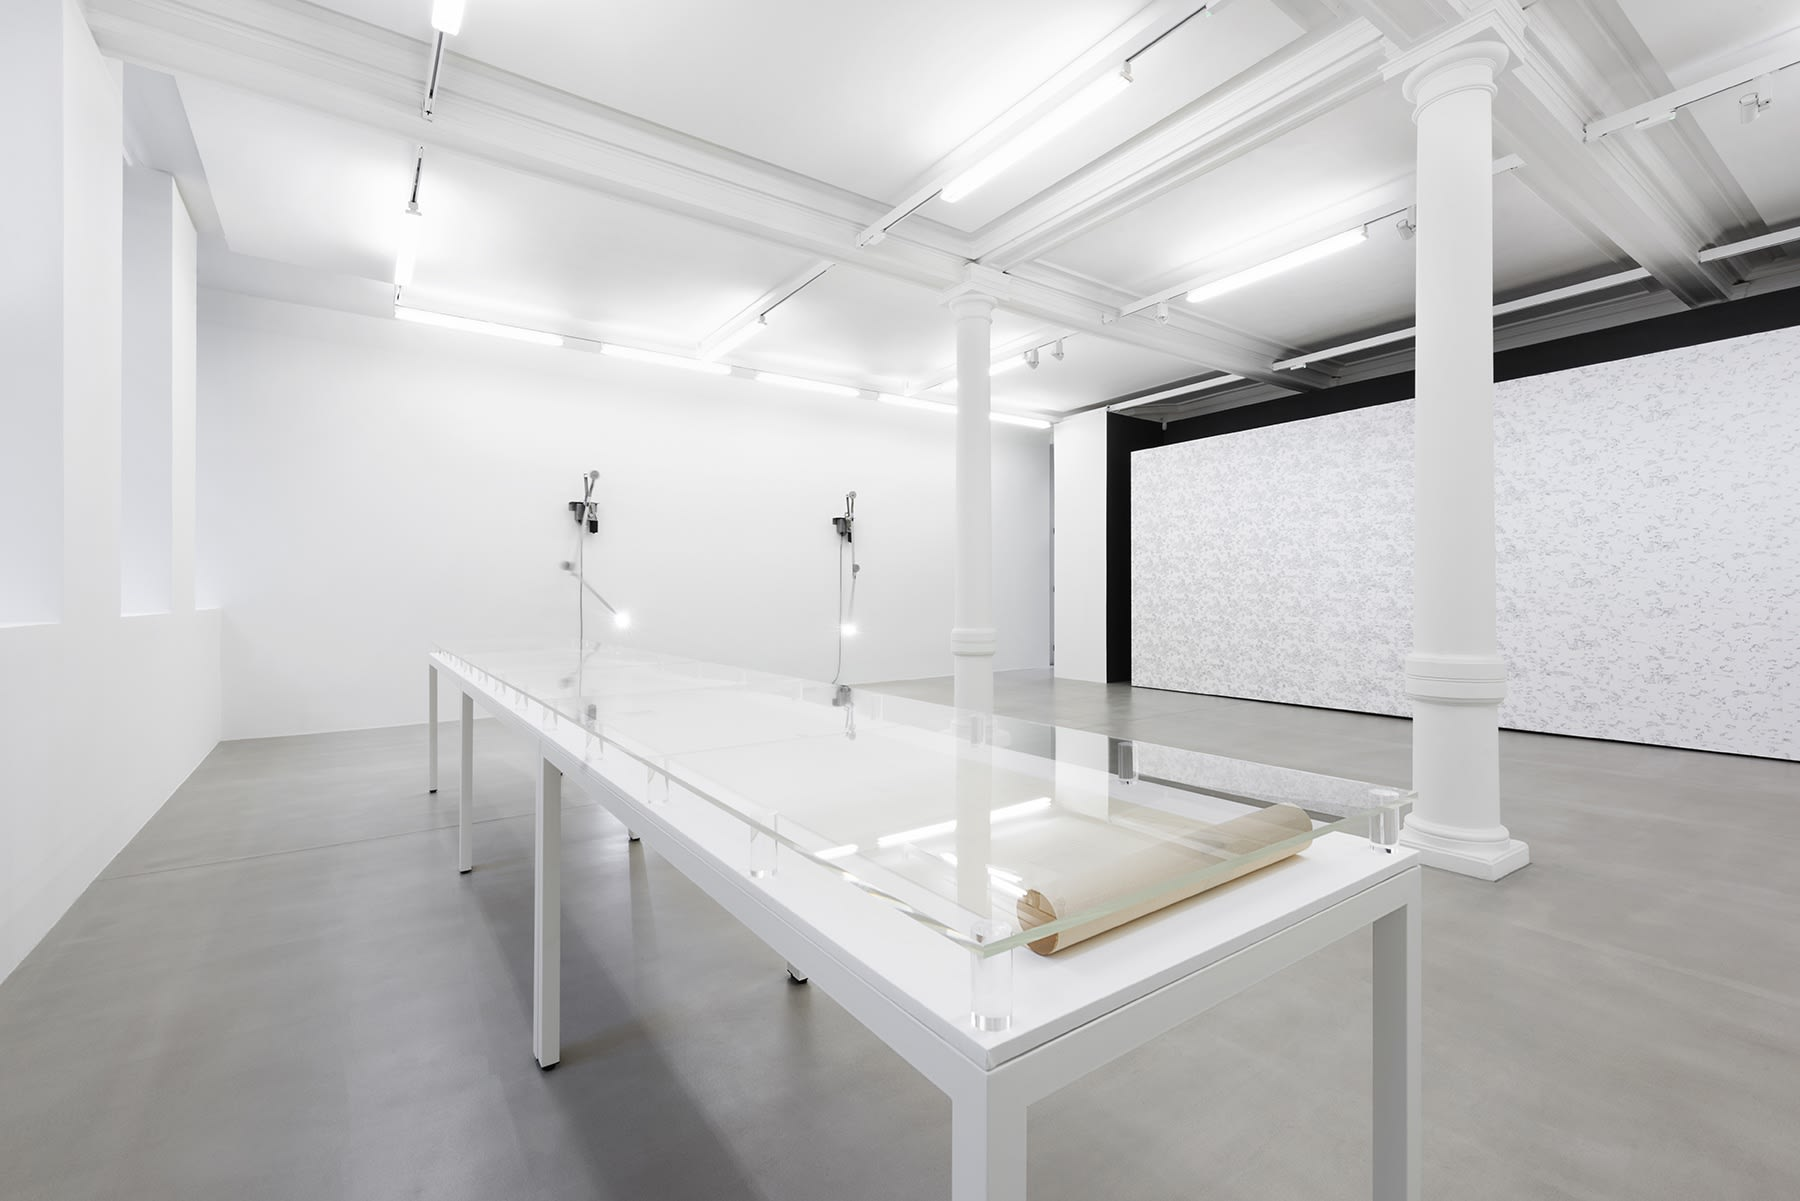 2 lights point to a long white display table in a white gallery space with columns.